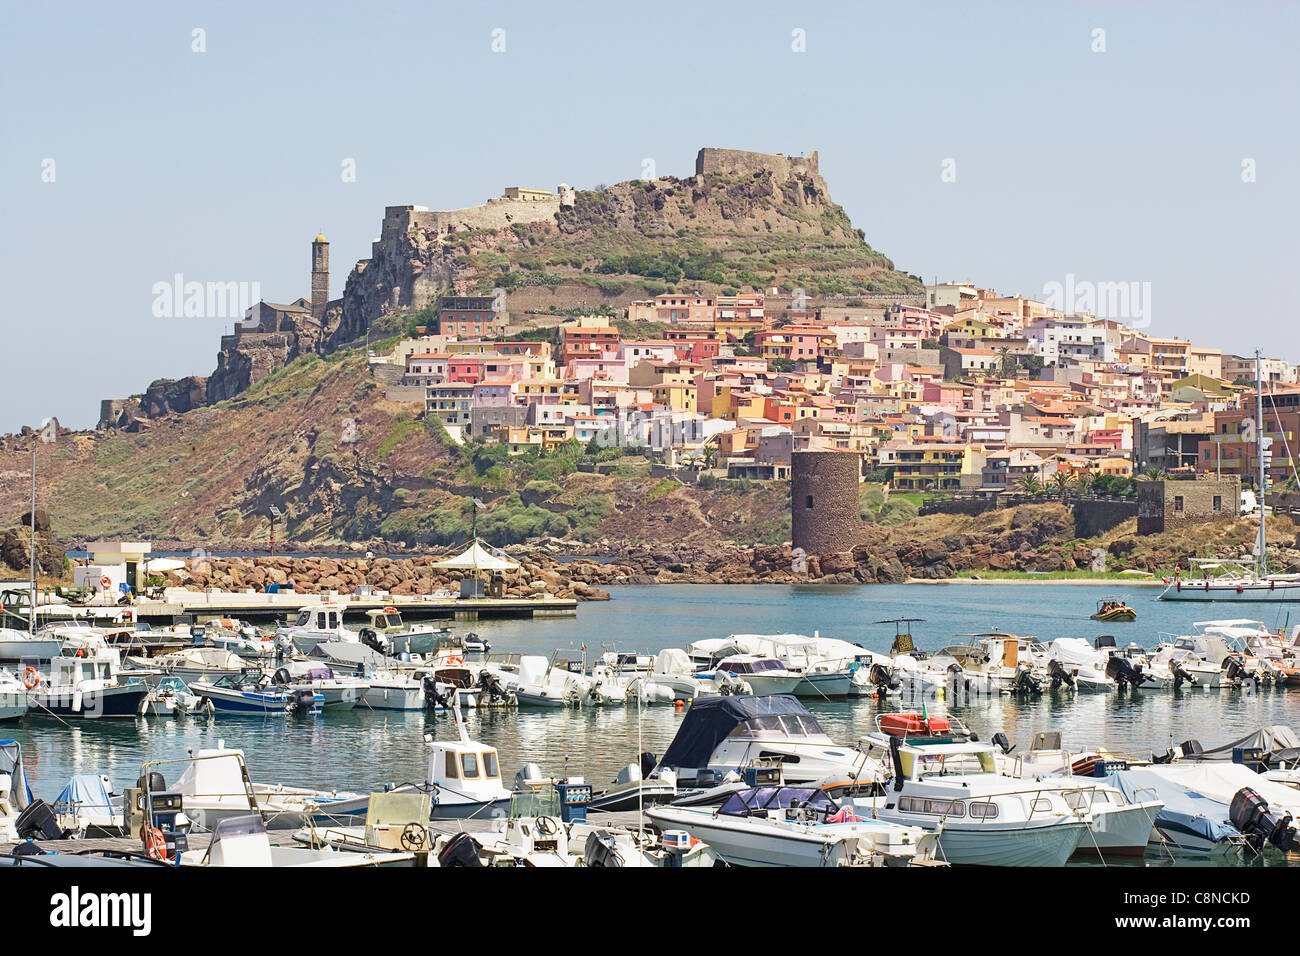 Italy, Sardinia, Castelsardo, view of medieval town and fortress on hilltop across the port Stock Photo